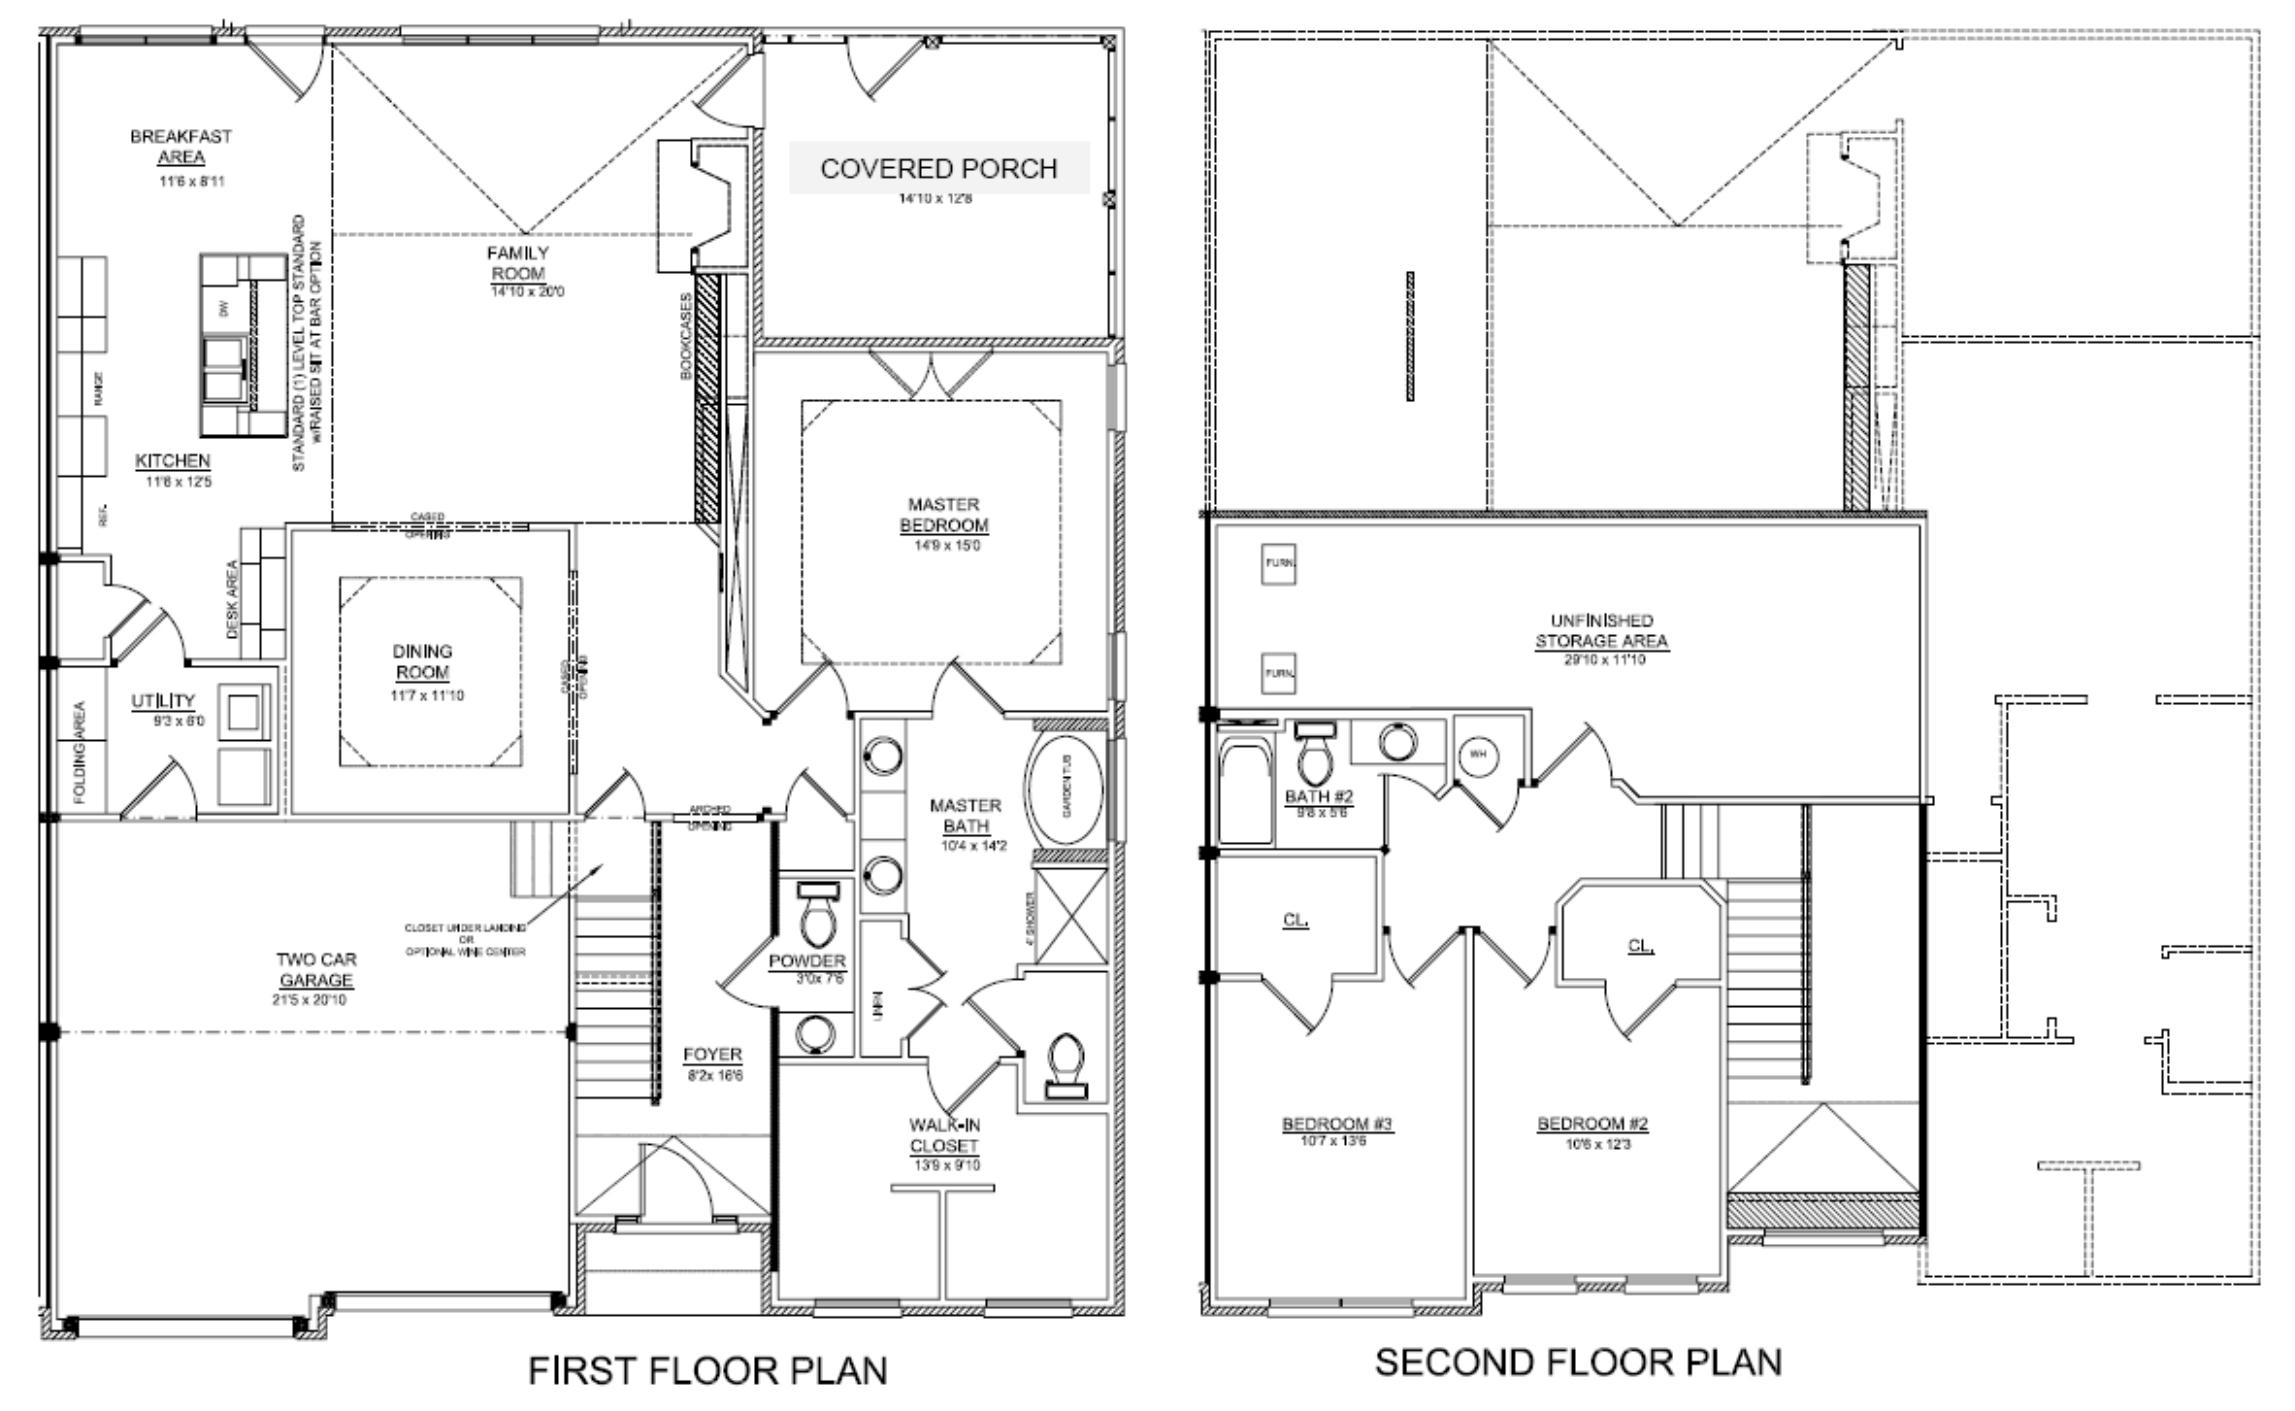 25 delightful luxury townhome floor plans building plans for Luxury townhome floor plans